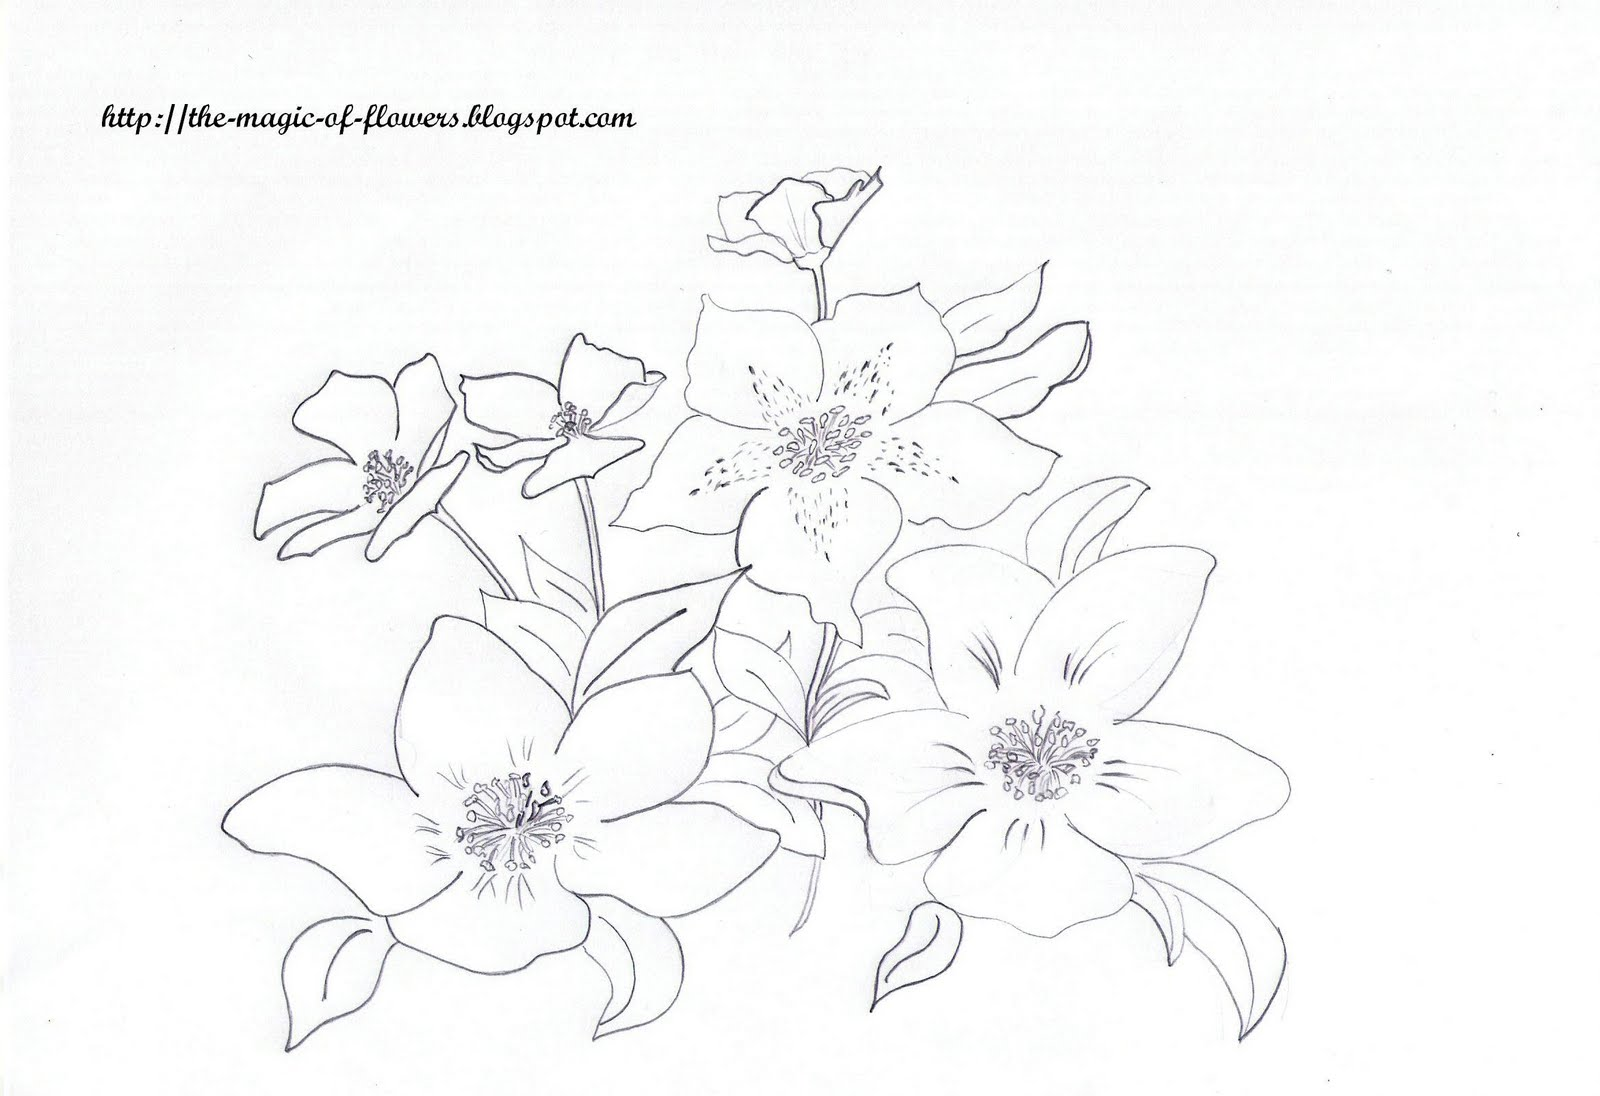 Say It With Flowers Free Flower Coloring Pages: Say It With Flowers: Free Flower Coloring Pages